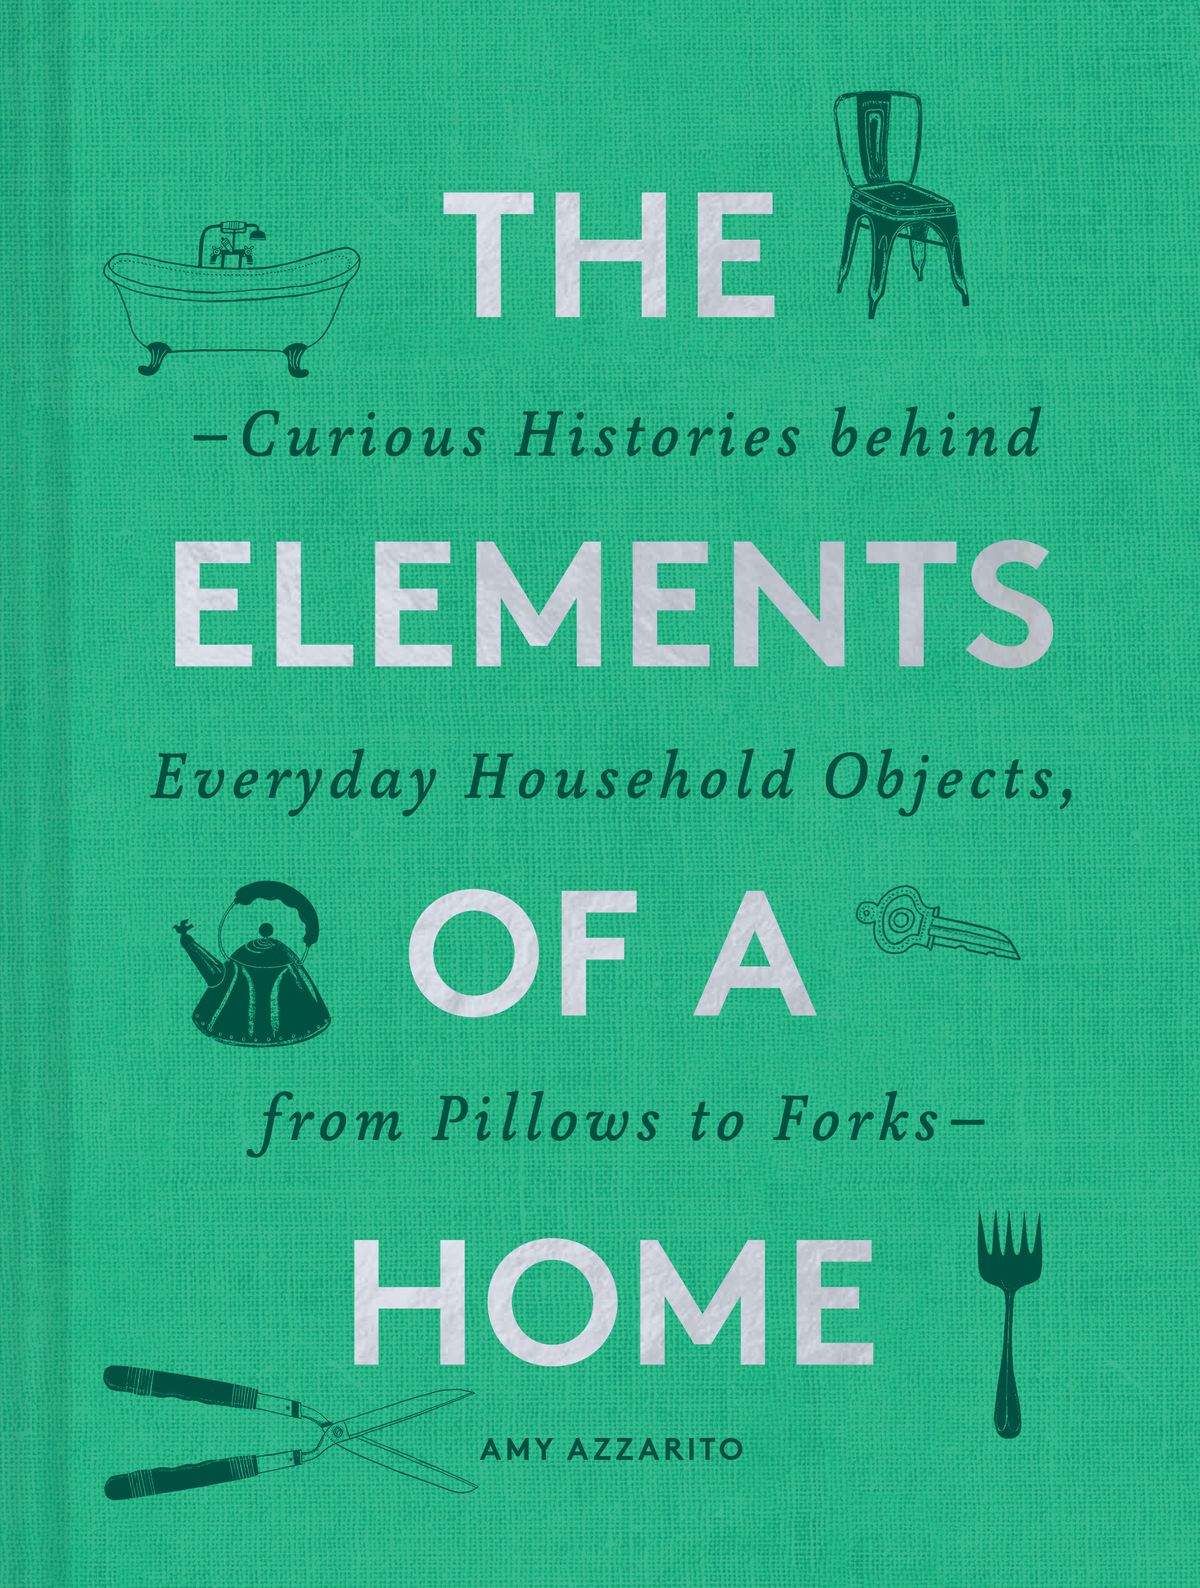 A book cover that reads: Elements of a Home: The Curious Histories Behind Everyday Household Objects, from Pillows to Forks. The cover, which is teal green, has tiny illustrations of a chair, a bathtub, a water kettle, pruning shears, and a fork